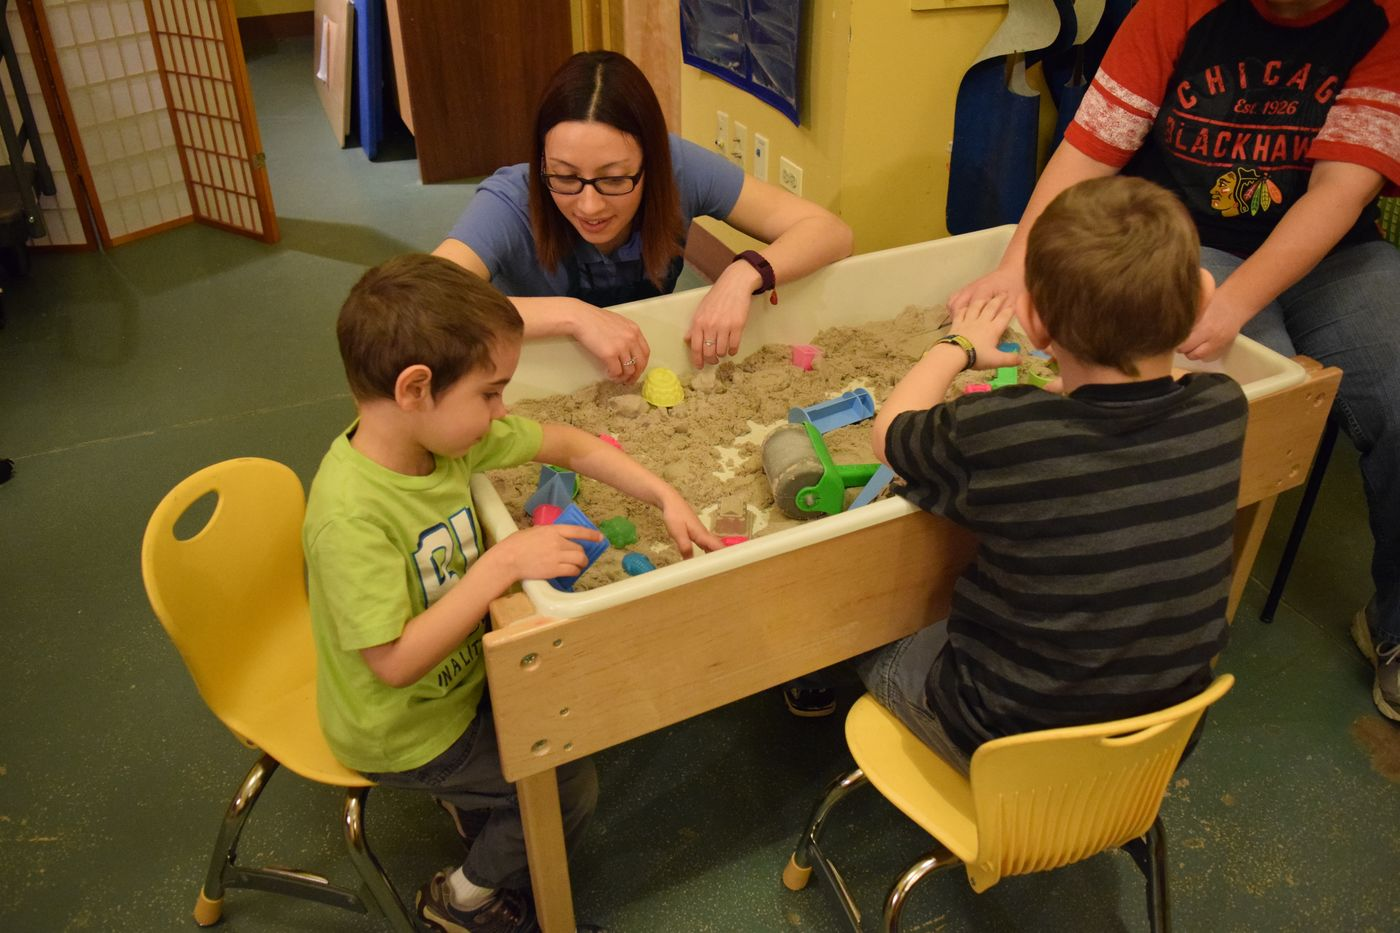 Two children sit around a sandbox, using molds to make shapes. An adult crouches down to their level.